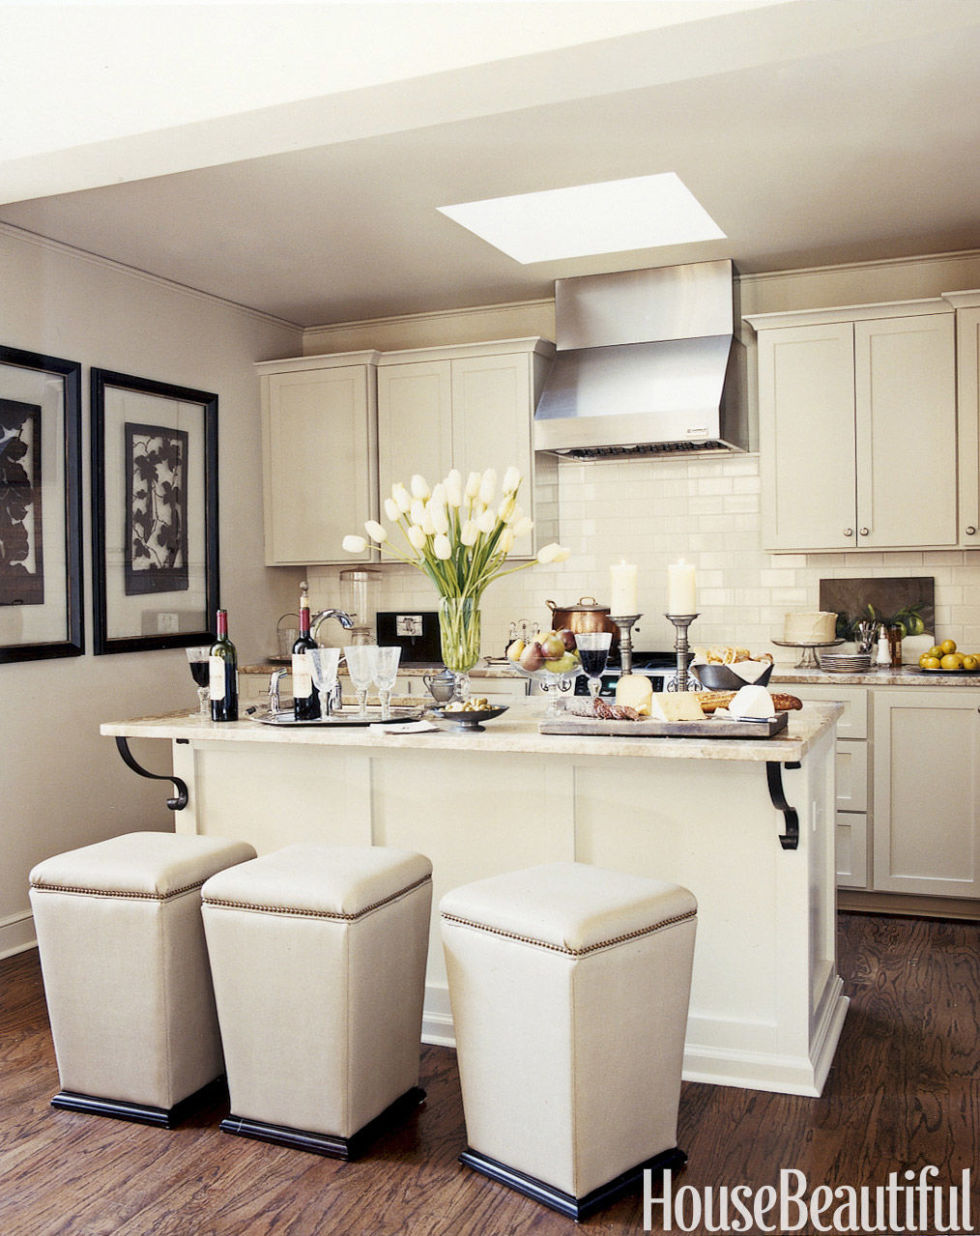 Photos of 25 Best Small Kitchen Design Ideas - Decorating Solutions for Small Kitchens kitchen designs for small kitchens